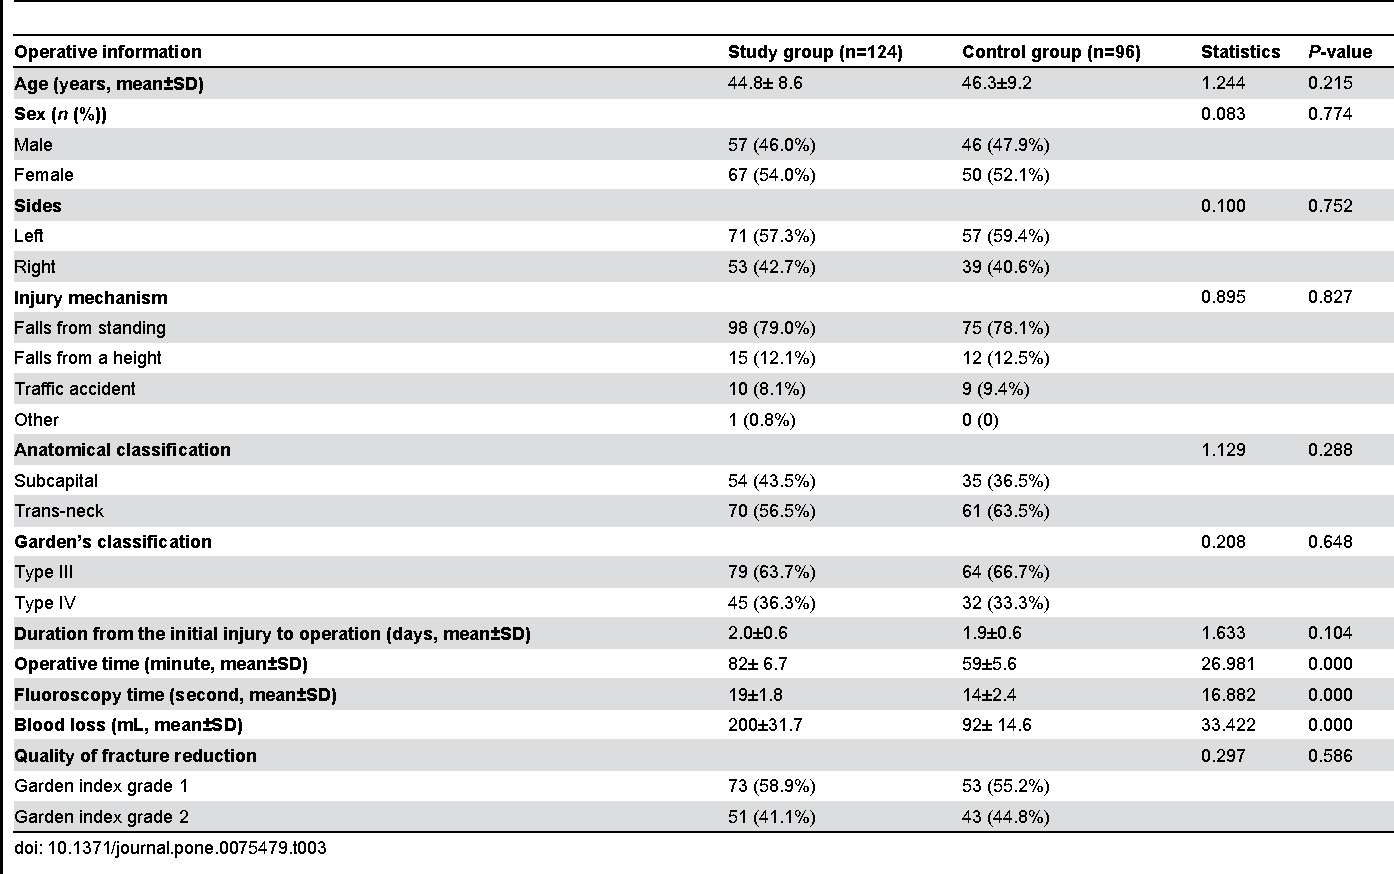 Table 3. Operative information of patients in study and control groups.